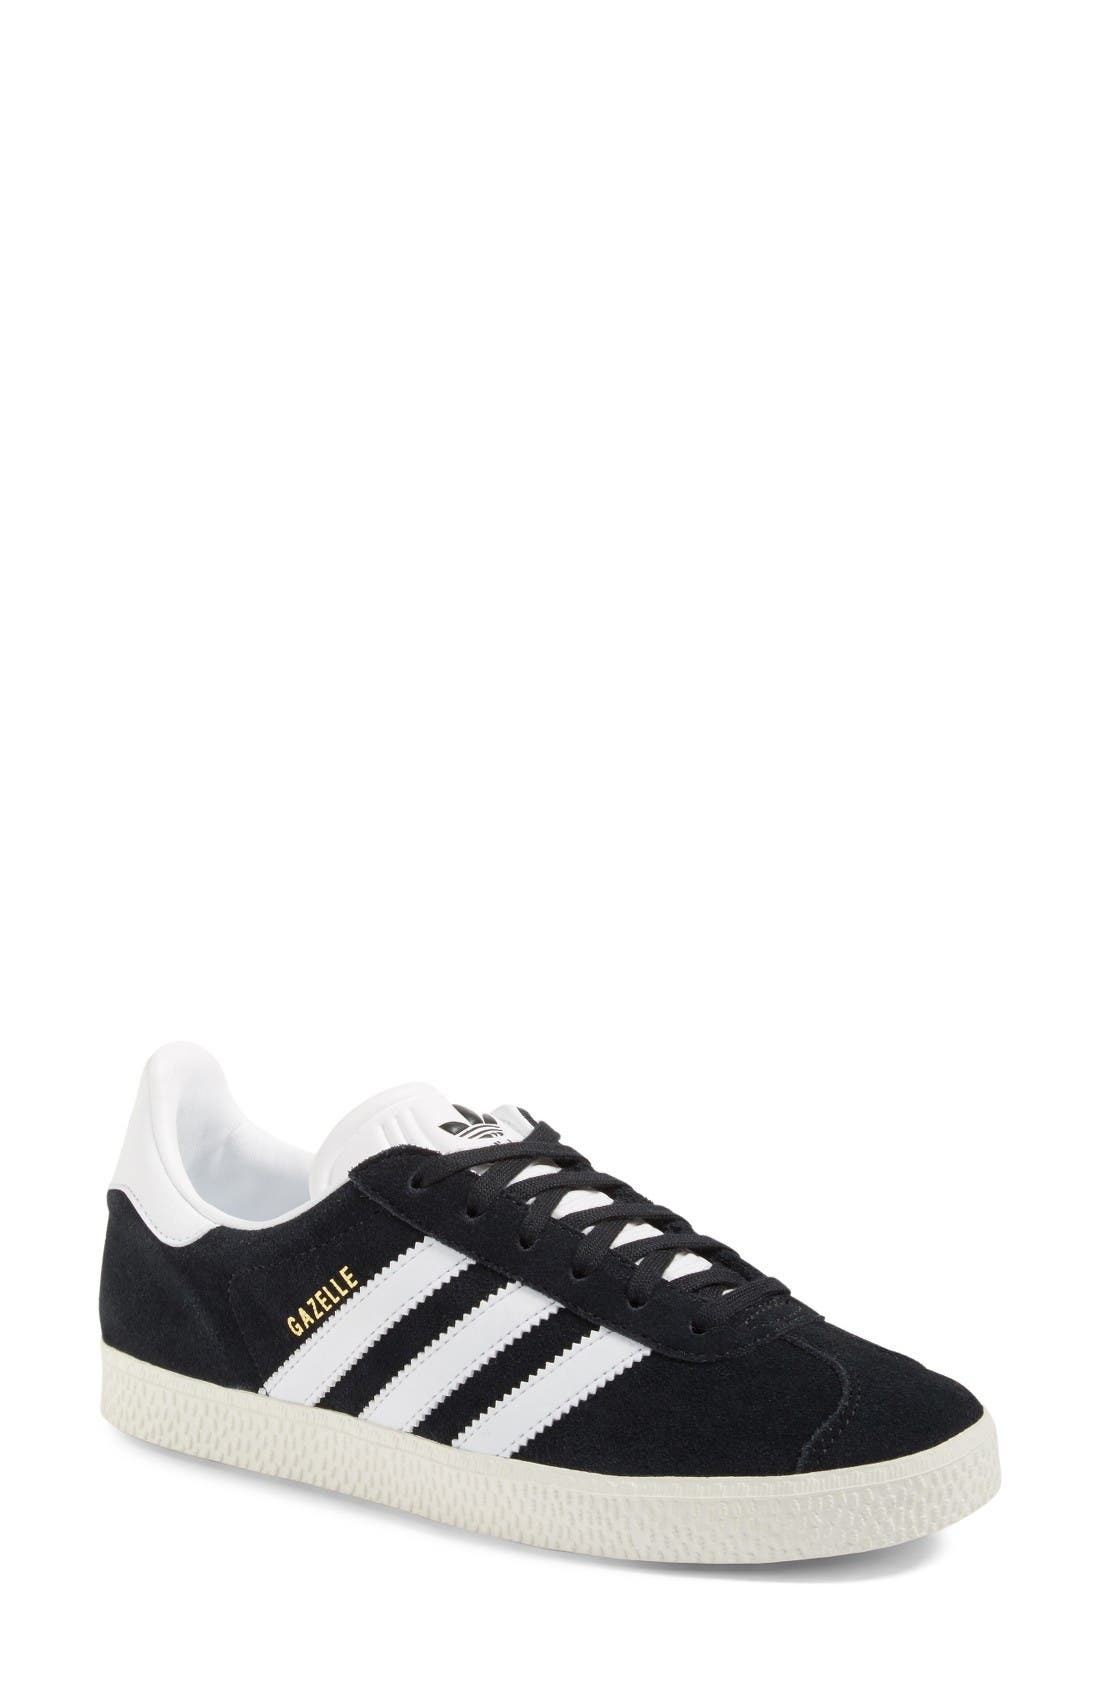 Gazelle Sneaker,                             Main thumbnail 1, color,                             Core Black